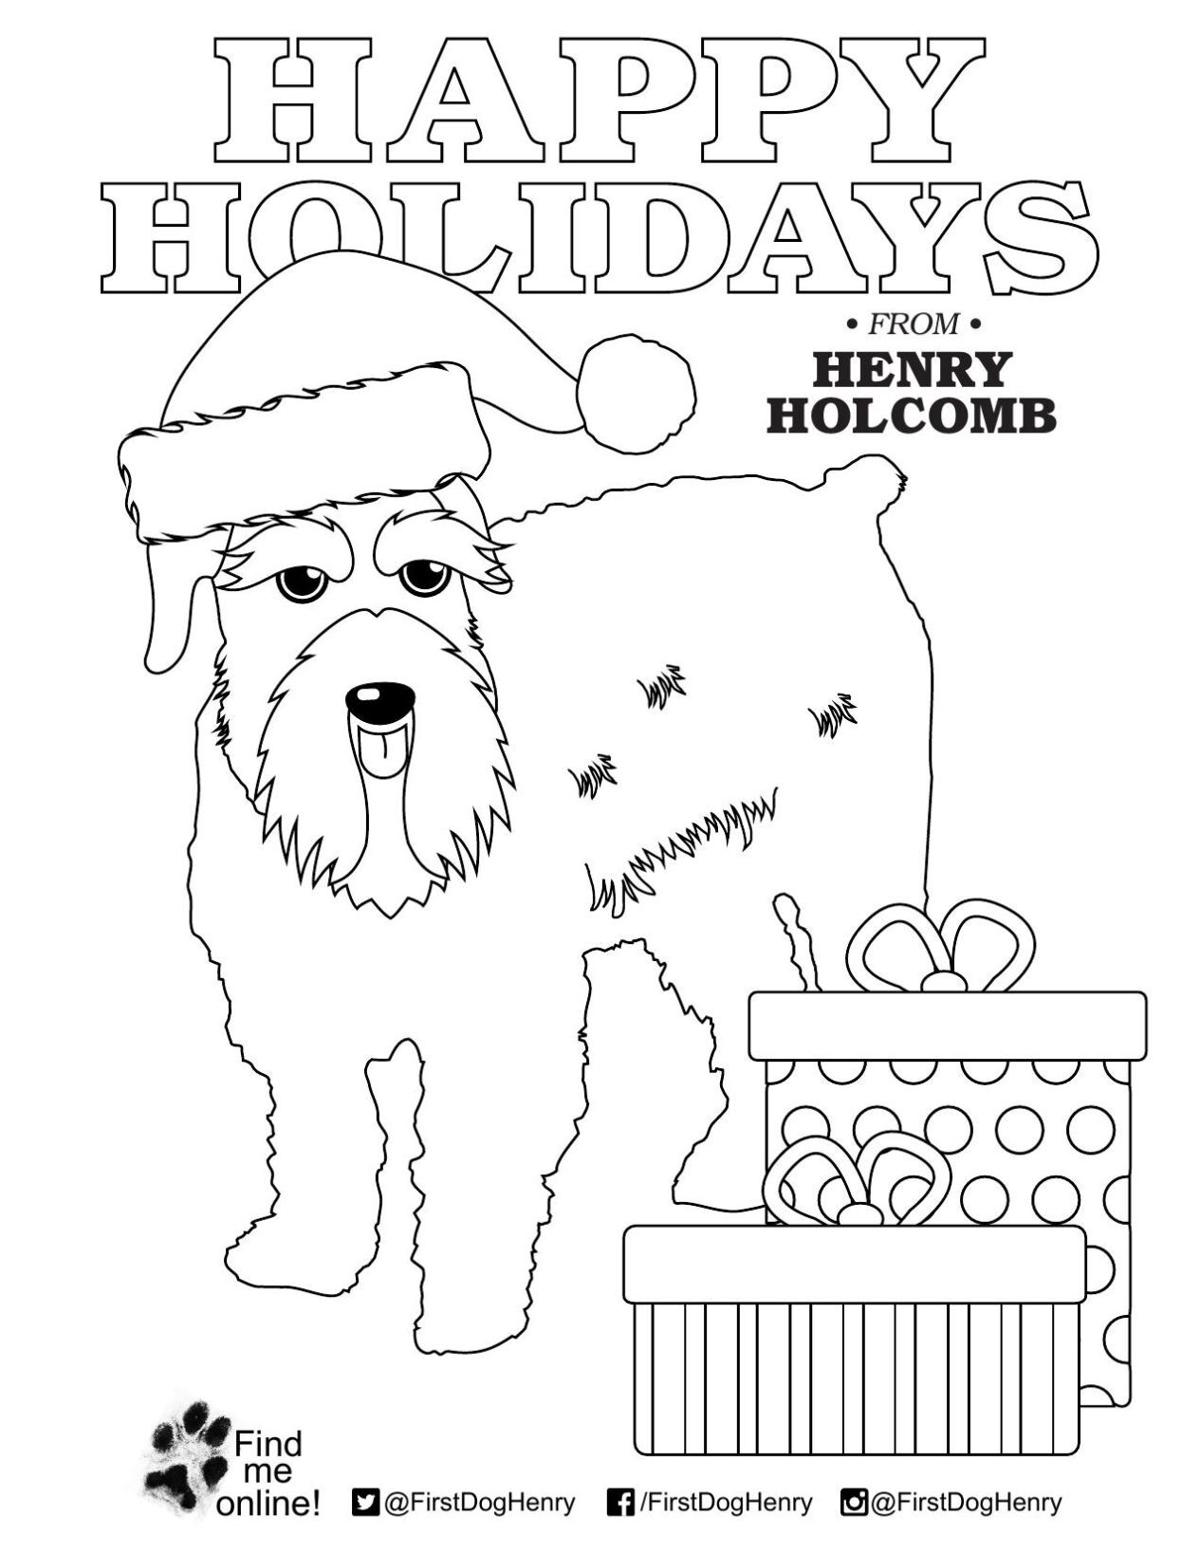 Henry Holcomb holiday coloring page